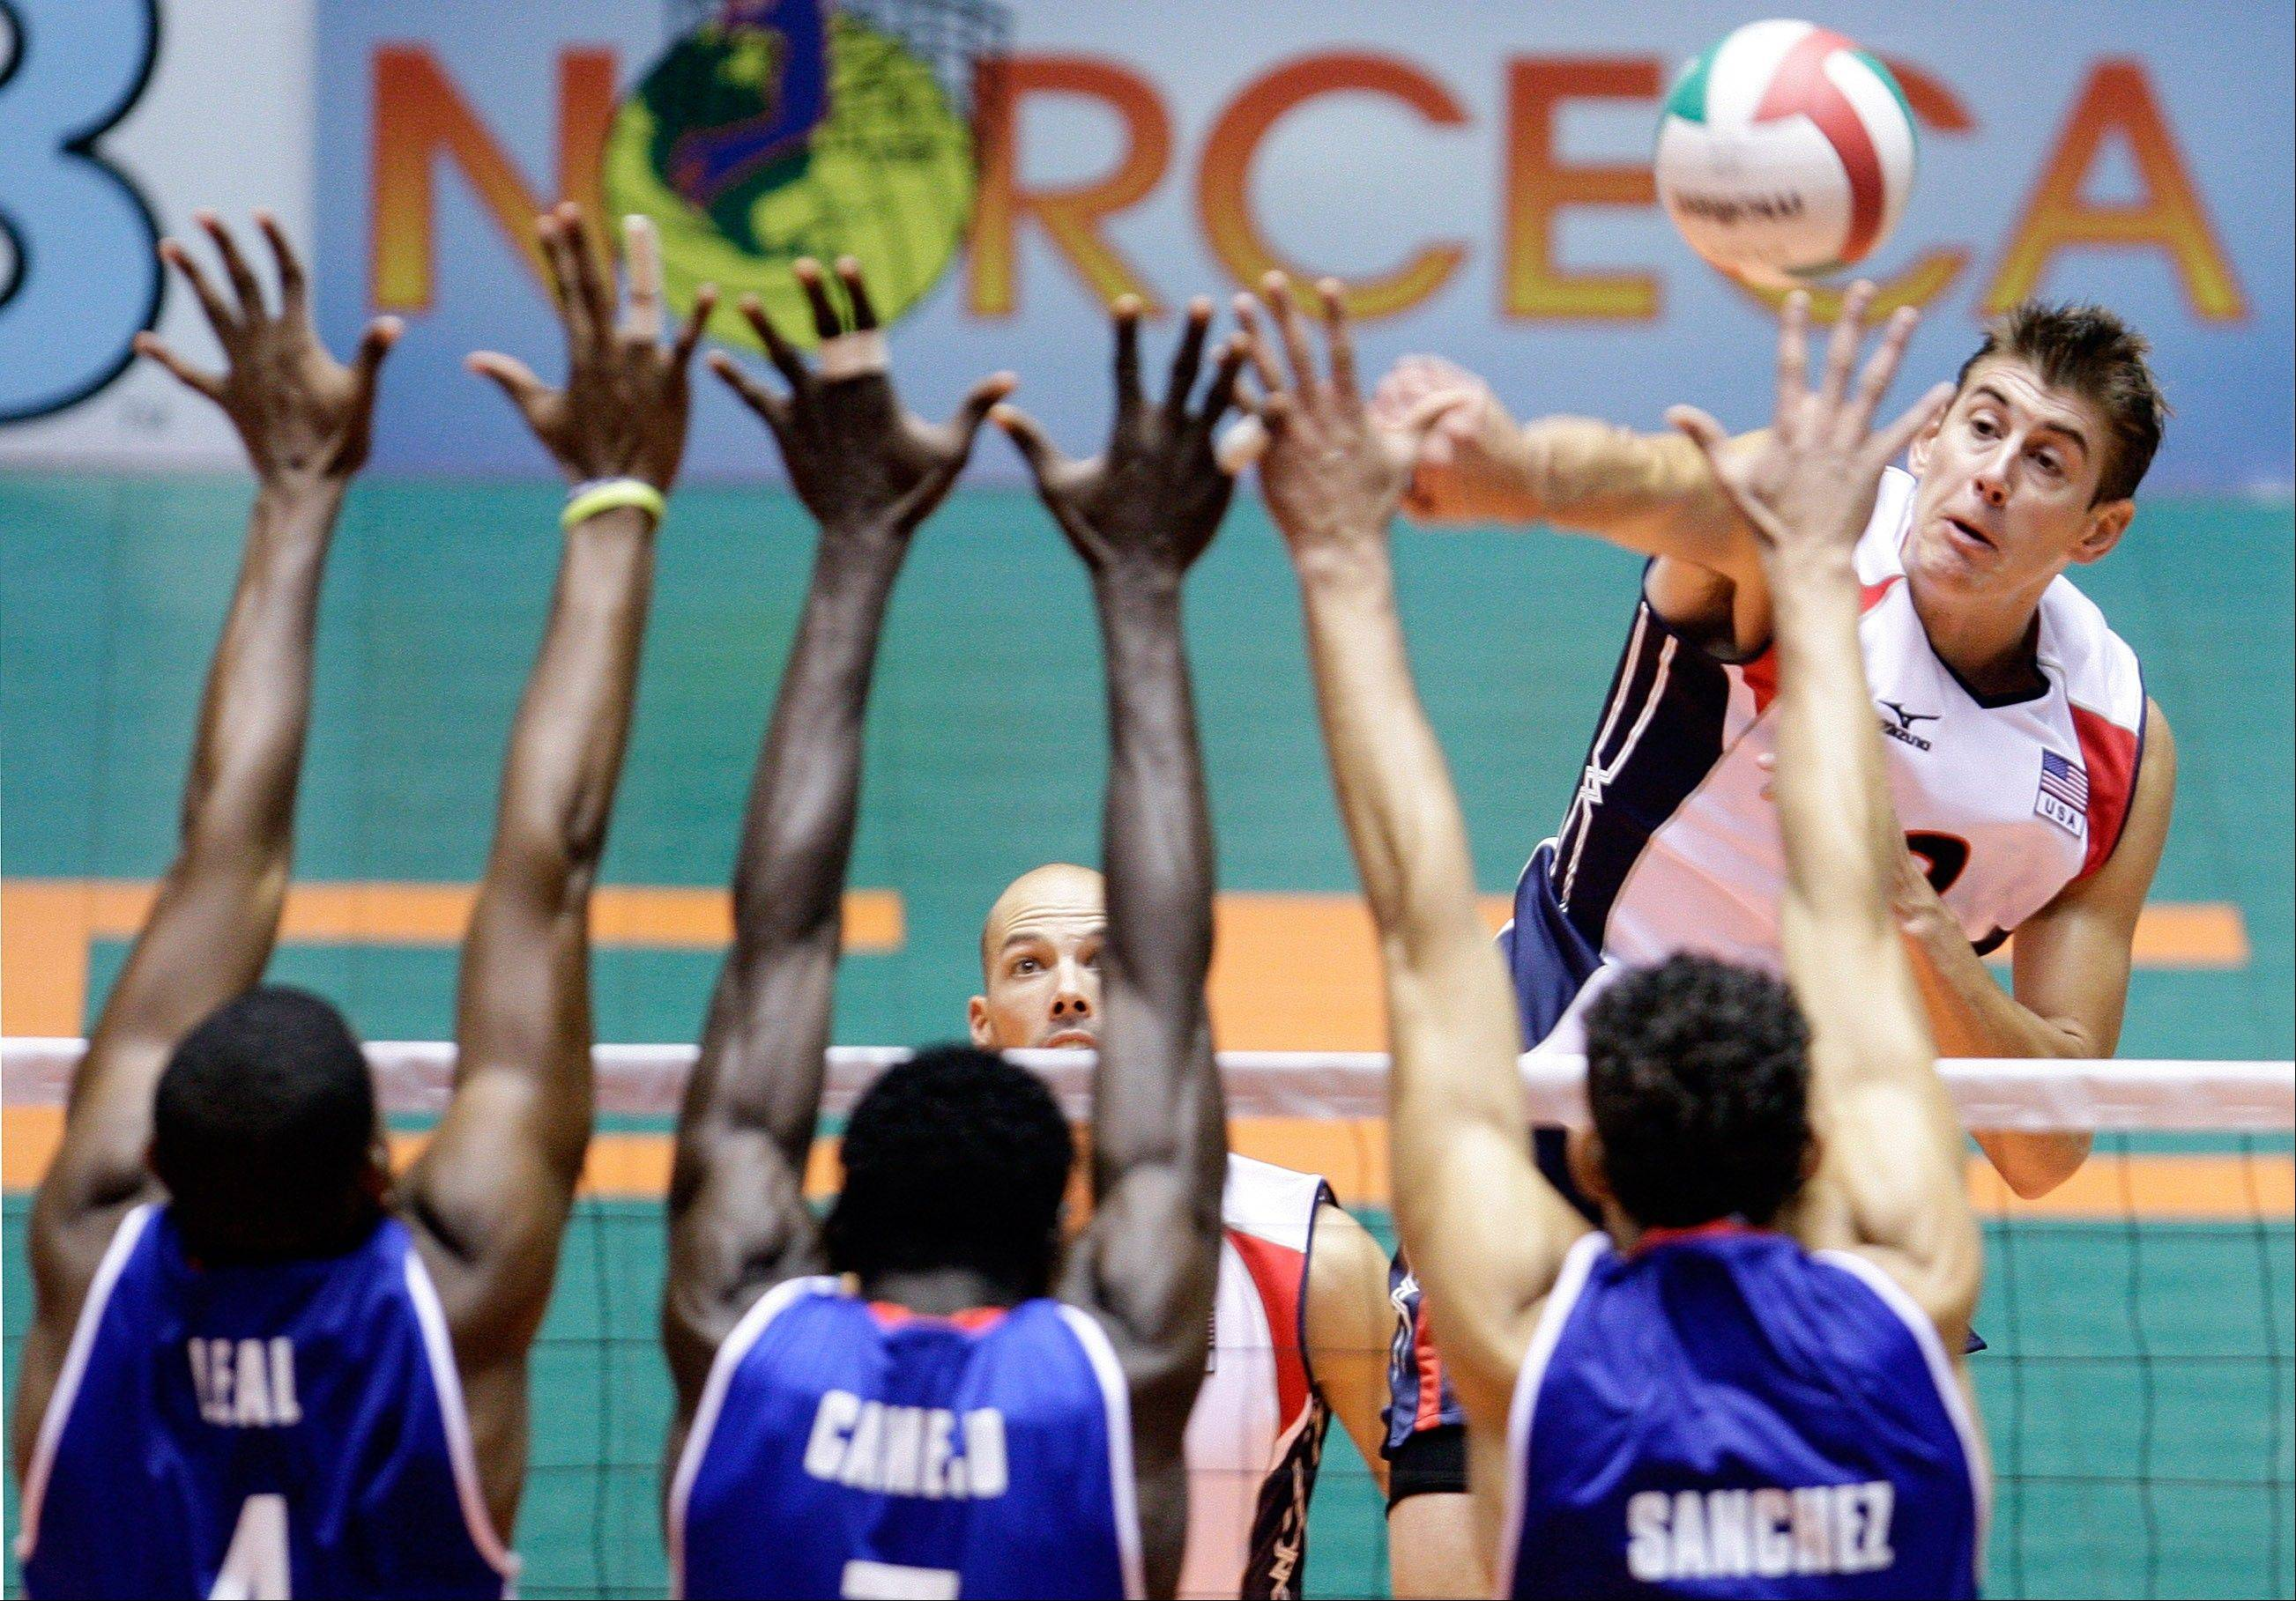 USA outside hitter Sean Rooney of Wheaton, here smashing a shot in an international match, has been named to his second Olympic team.